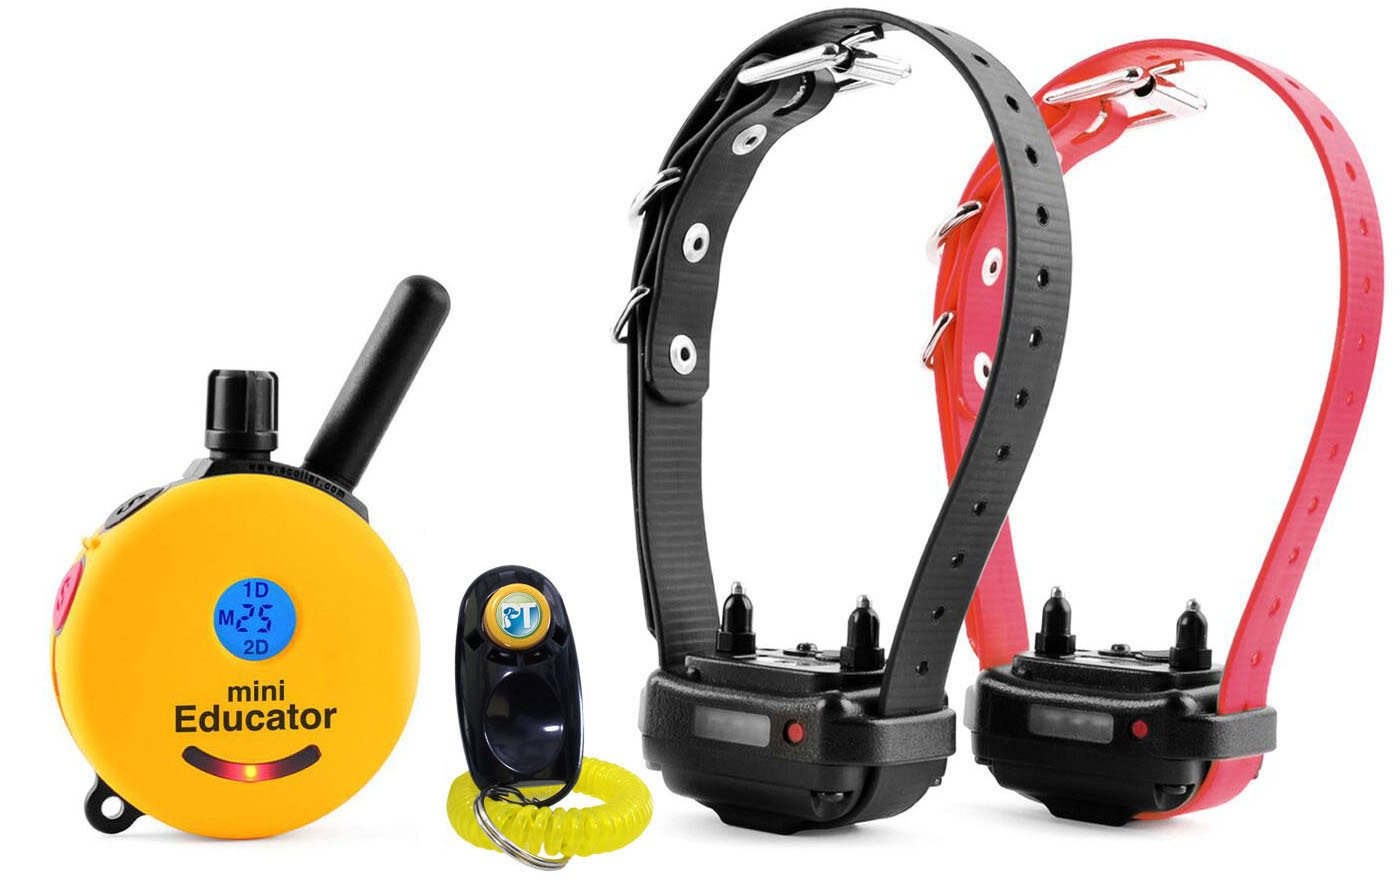 Bundle of 2 Items - E-Collar - ET-302 - Half a Mile Remote Waterproof Two Dog Trainer Mini Educator - Static, Vibration and Sound Stimulation Collar With PetsTEK Dog Training Clicker Training Kit by Mini Educator (Image #1)